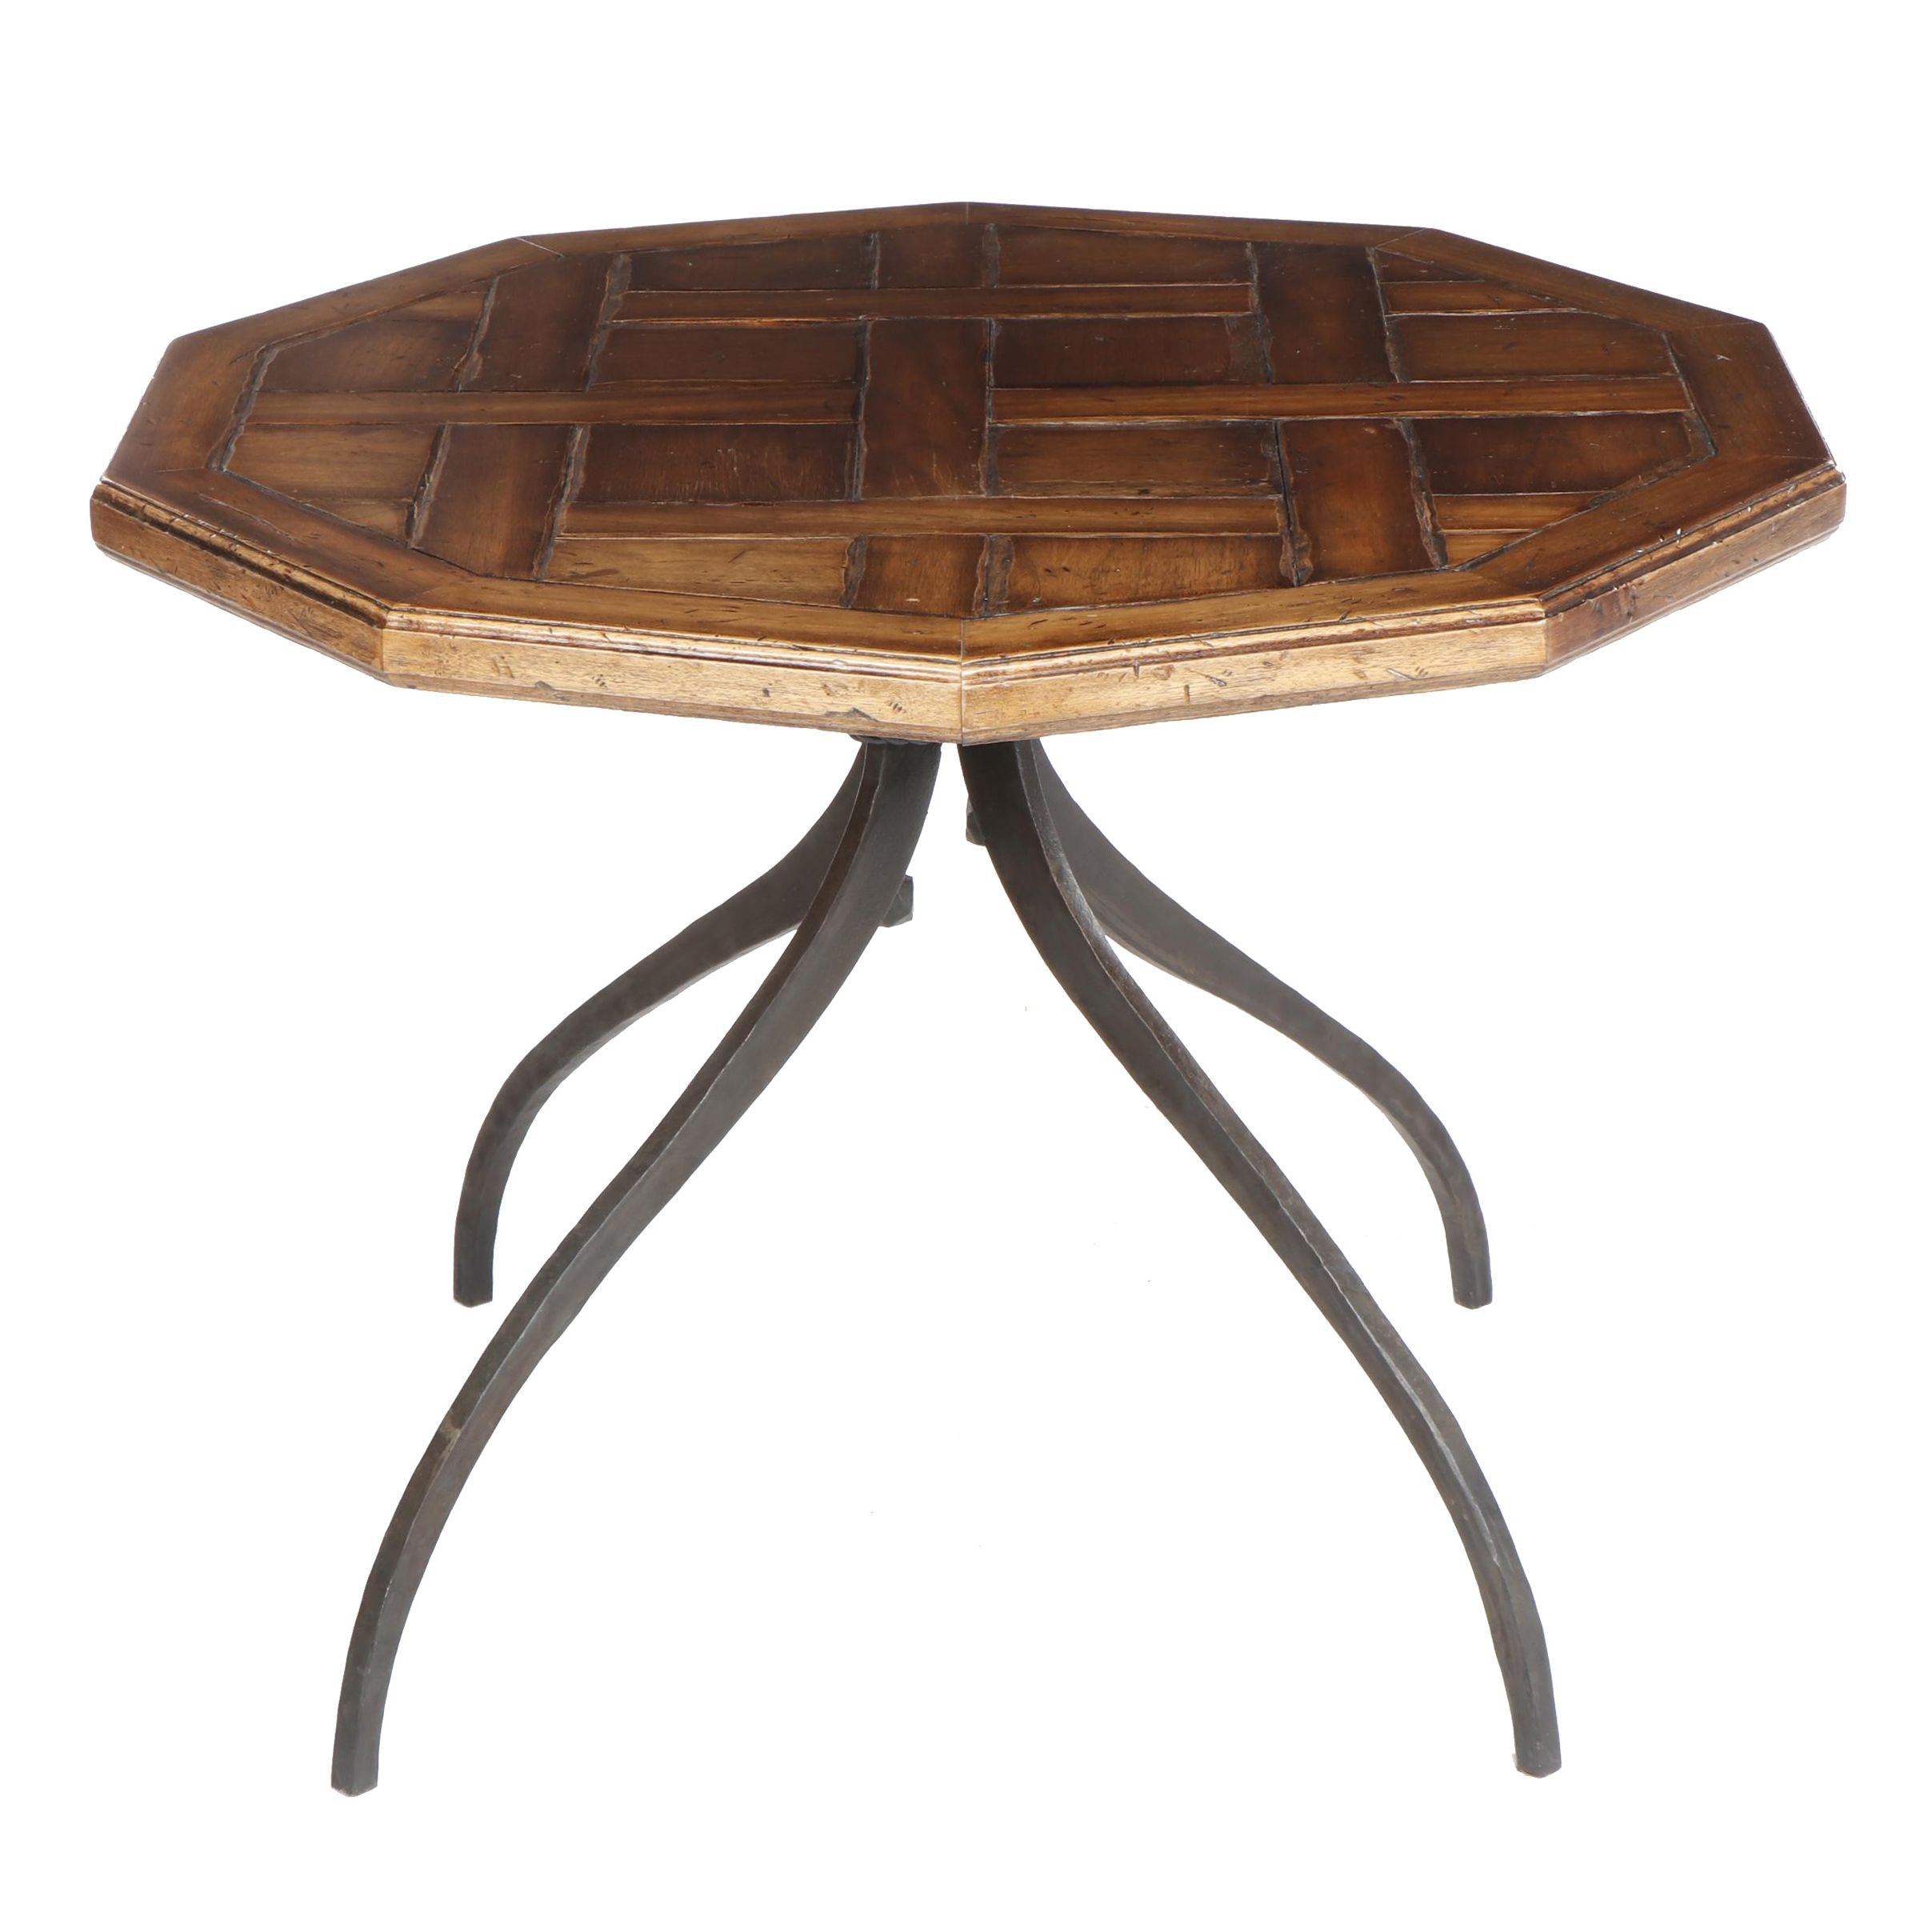 Contemporary Oak Top Accent Table With Woven Design and Iron Base